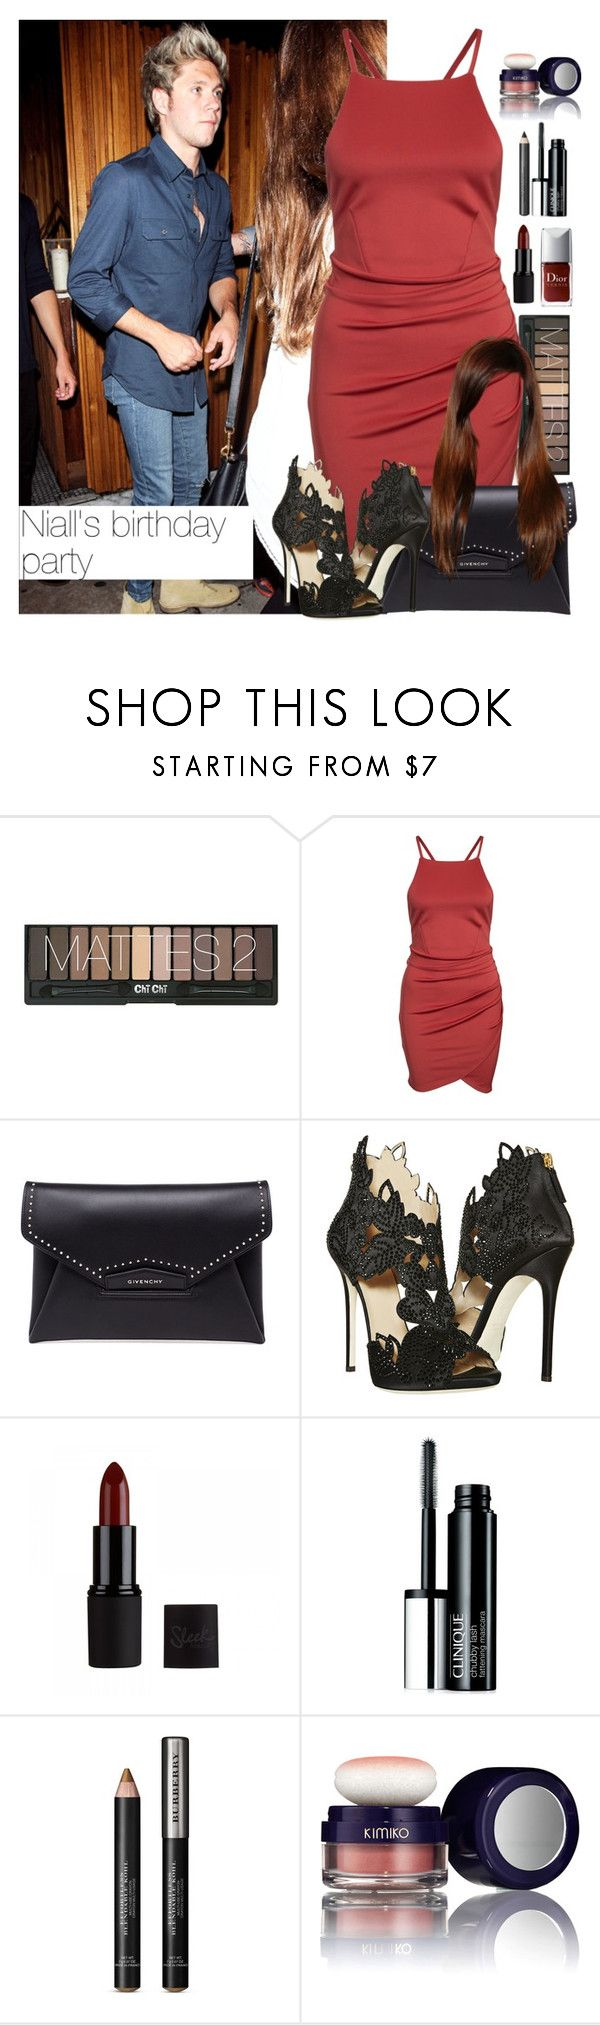 """""""・ Niall's birthday party ・"""" by zaynismybaex ❤ liked on Polyvore featuring Givenchy, La Perla, Clinique, Burberry and Kimiko"""